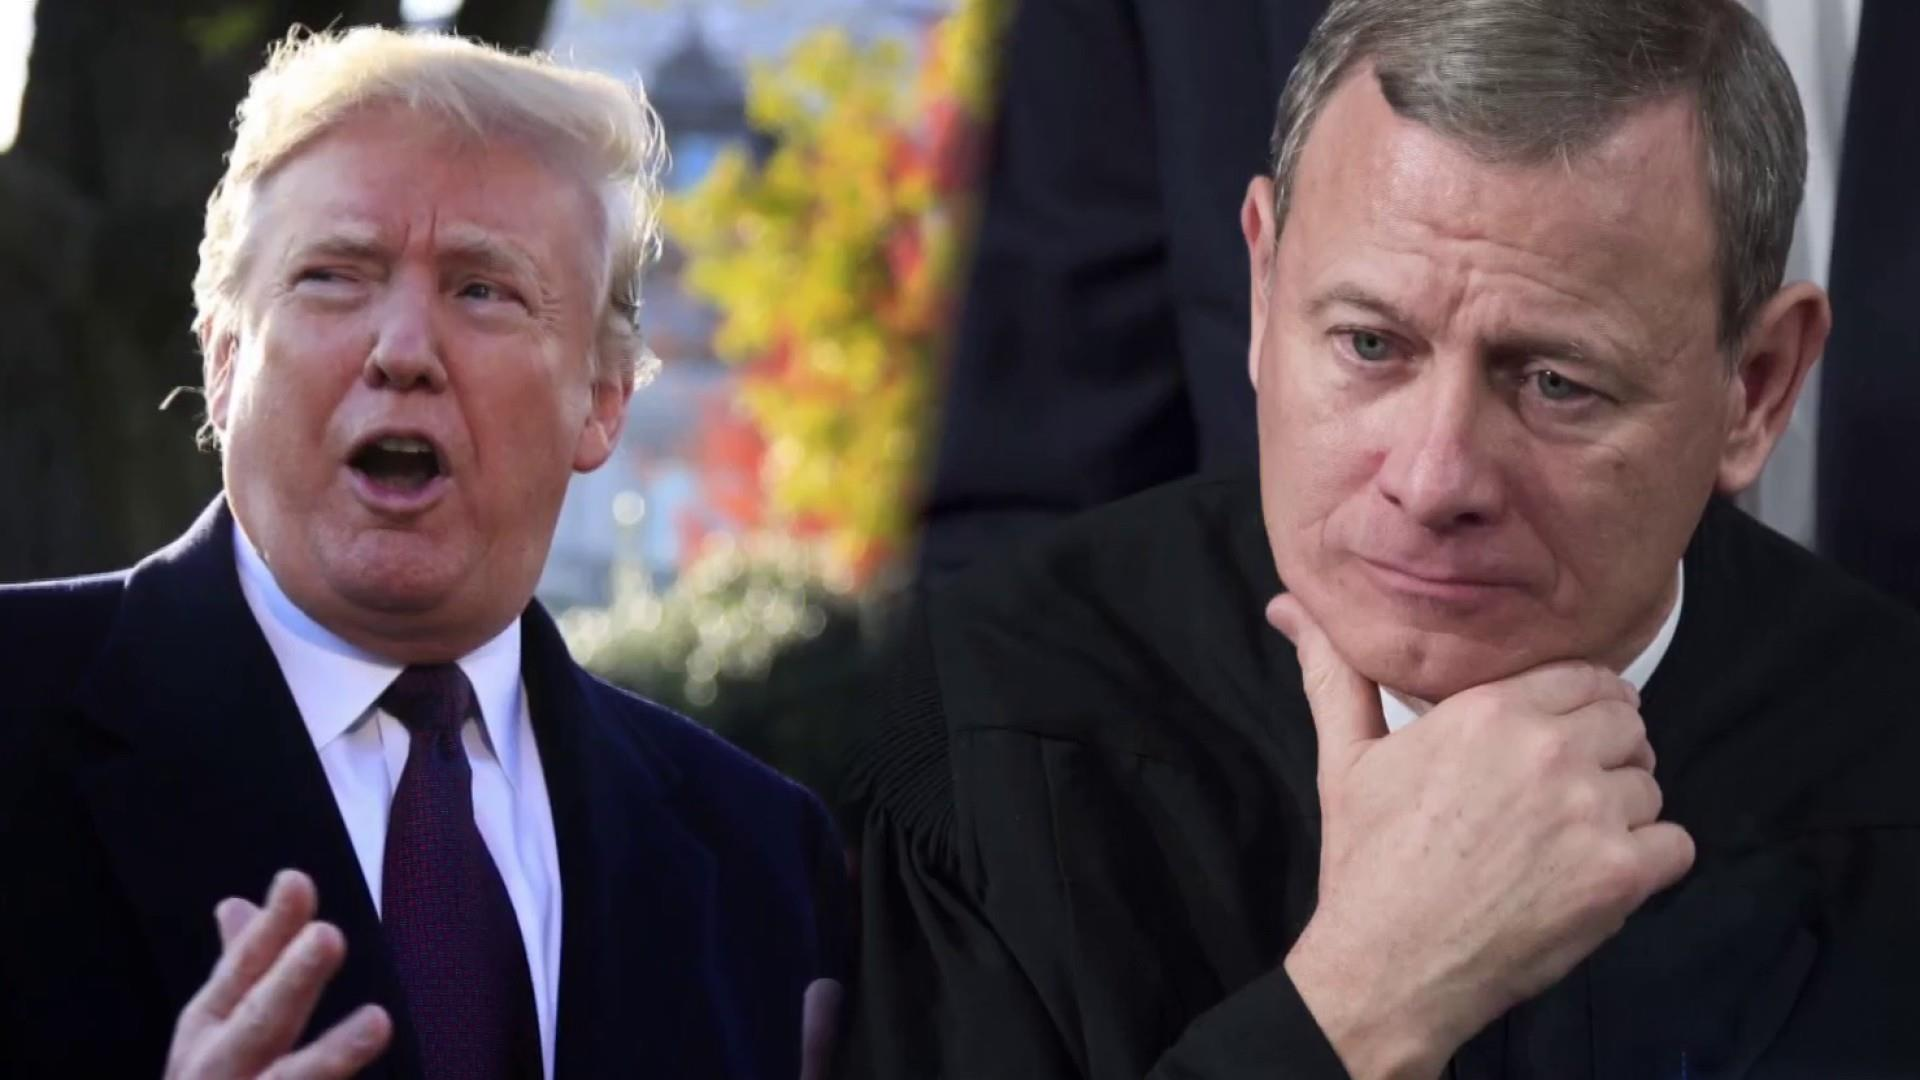 Chief Justice Roberts' rebuke of Trump's comment was carefully worded for a reason